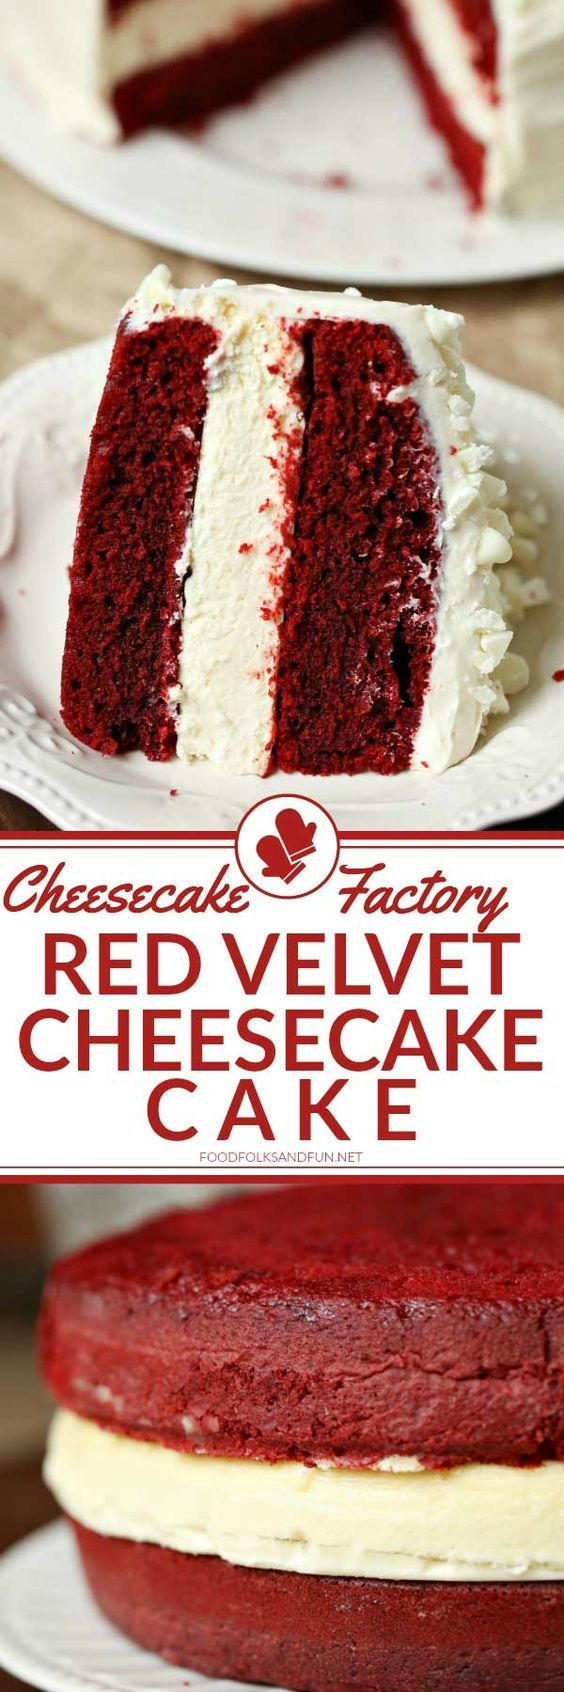 This Cheesecake Factory Red Velvet Cheesecake Cake Recipe ...